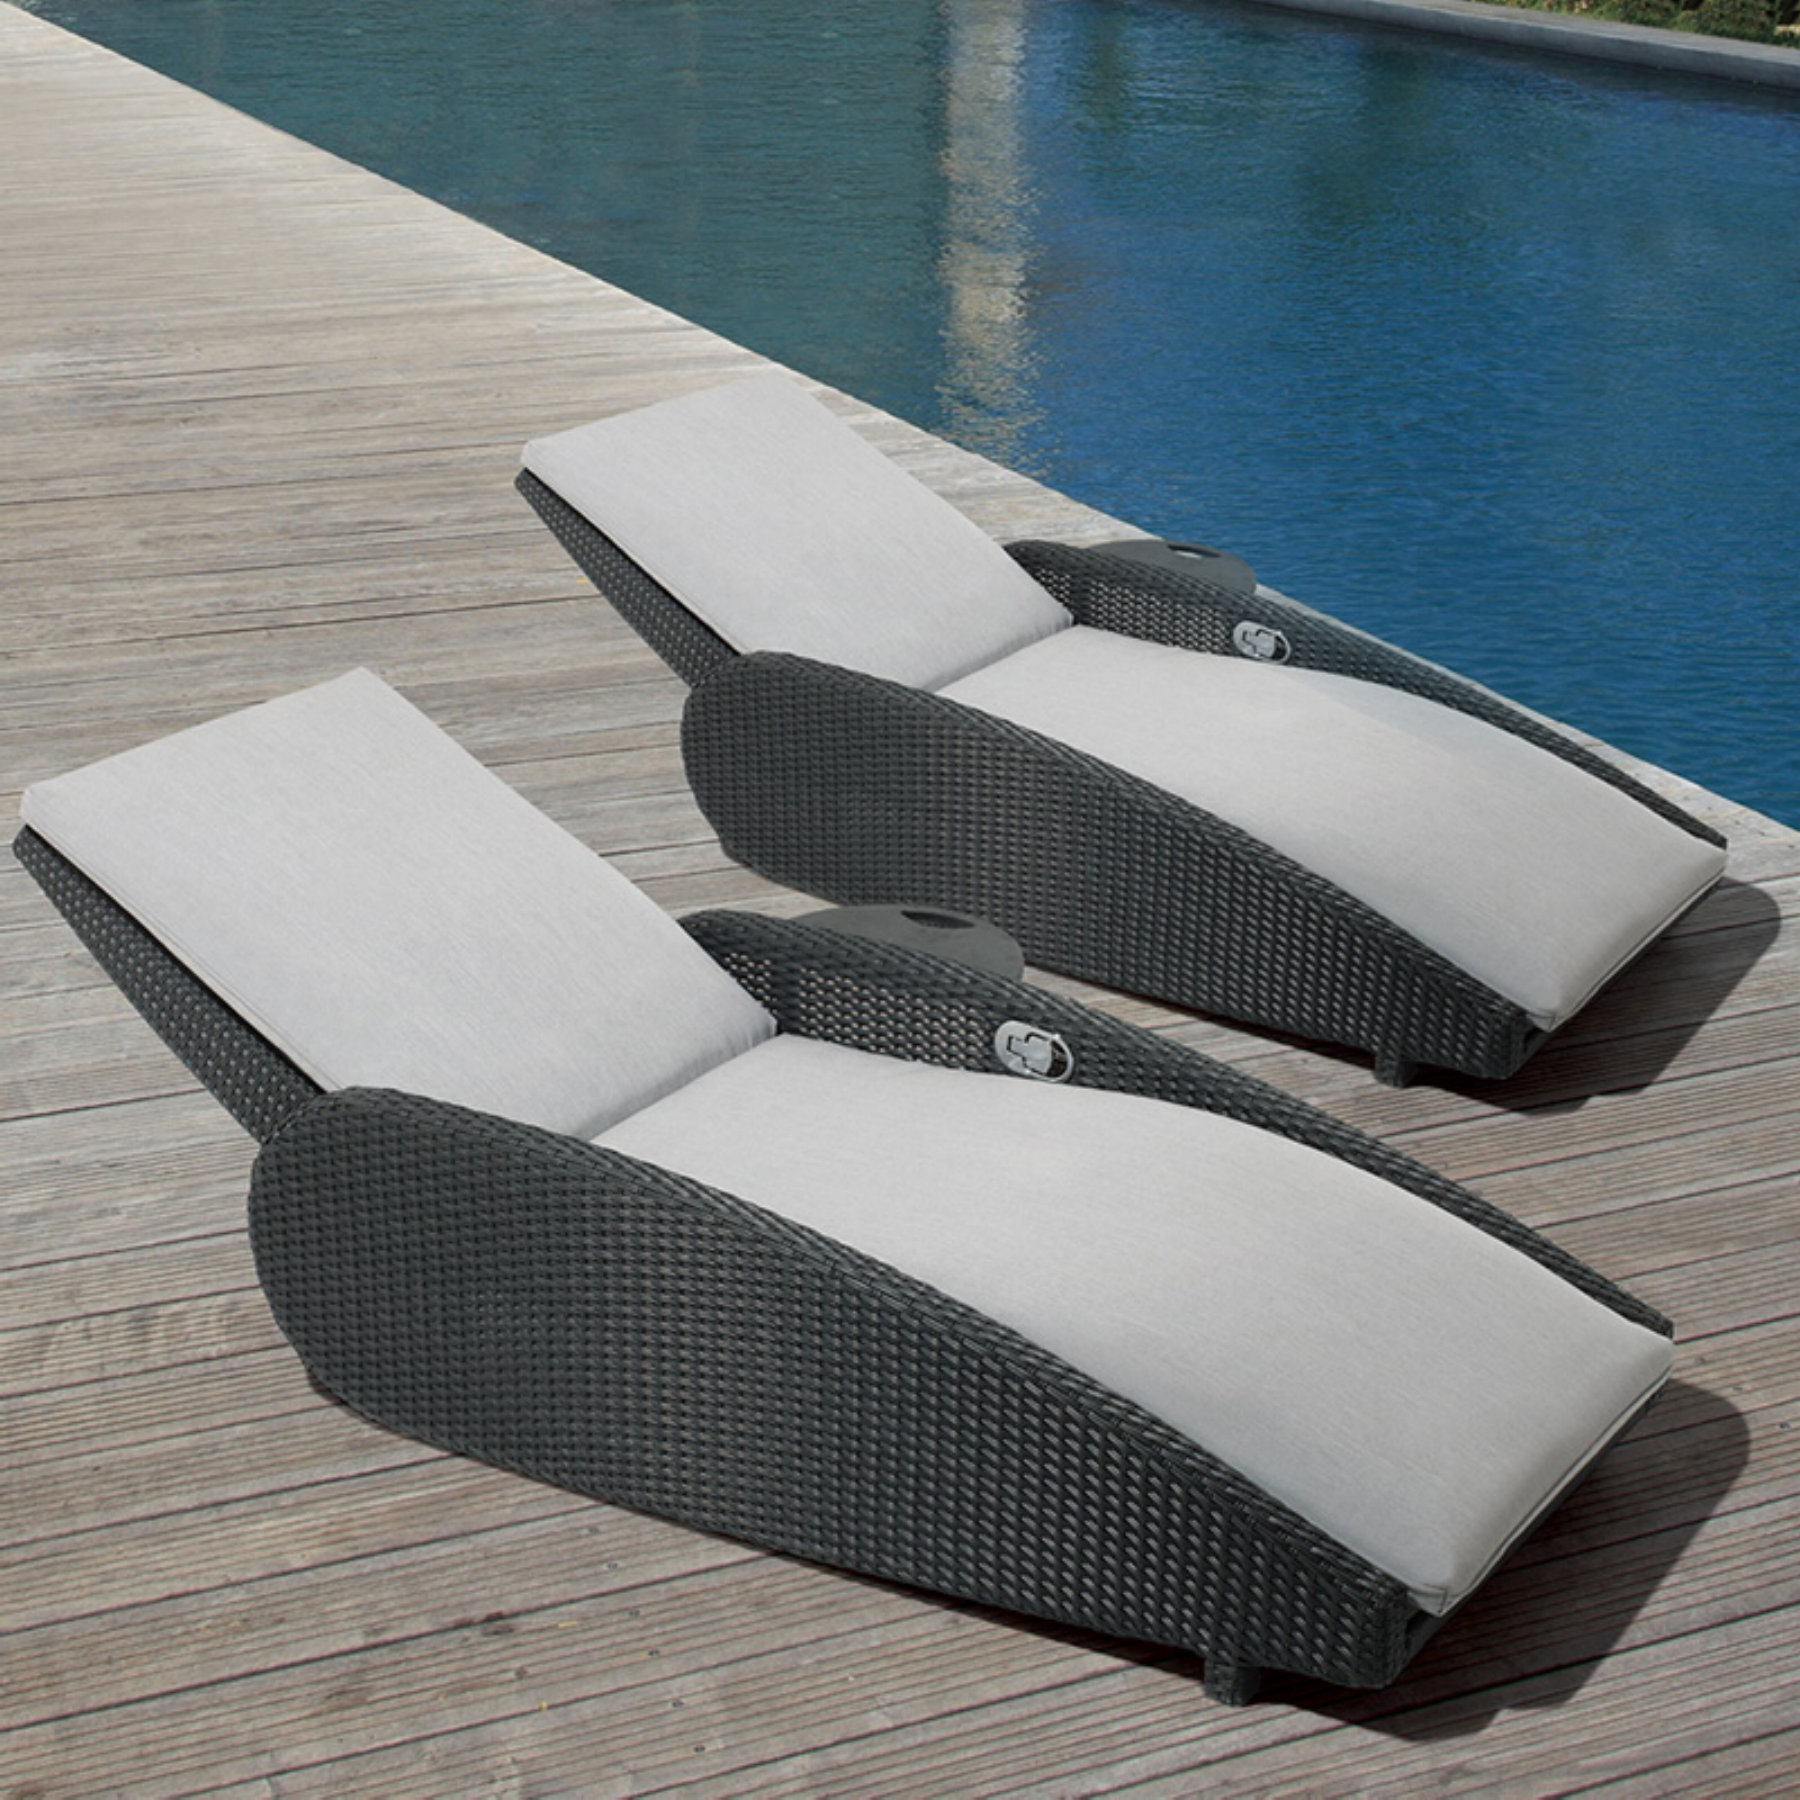 Most Recently Released Lounge Chairs In White With Grey Cushions Regarding Ove Decors Sevilla Gray Outdoor Chaise Lounge Chair – Set Of (Gallery 7 of 25)